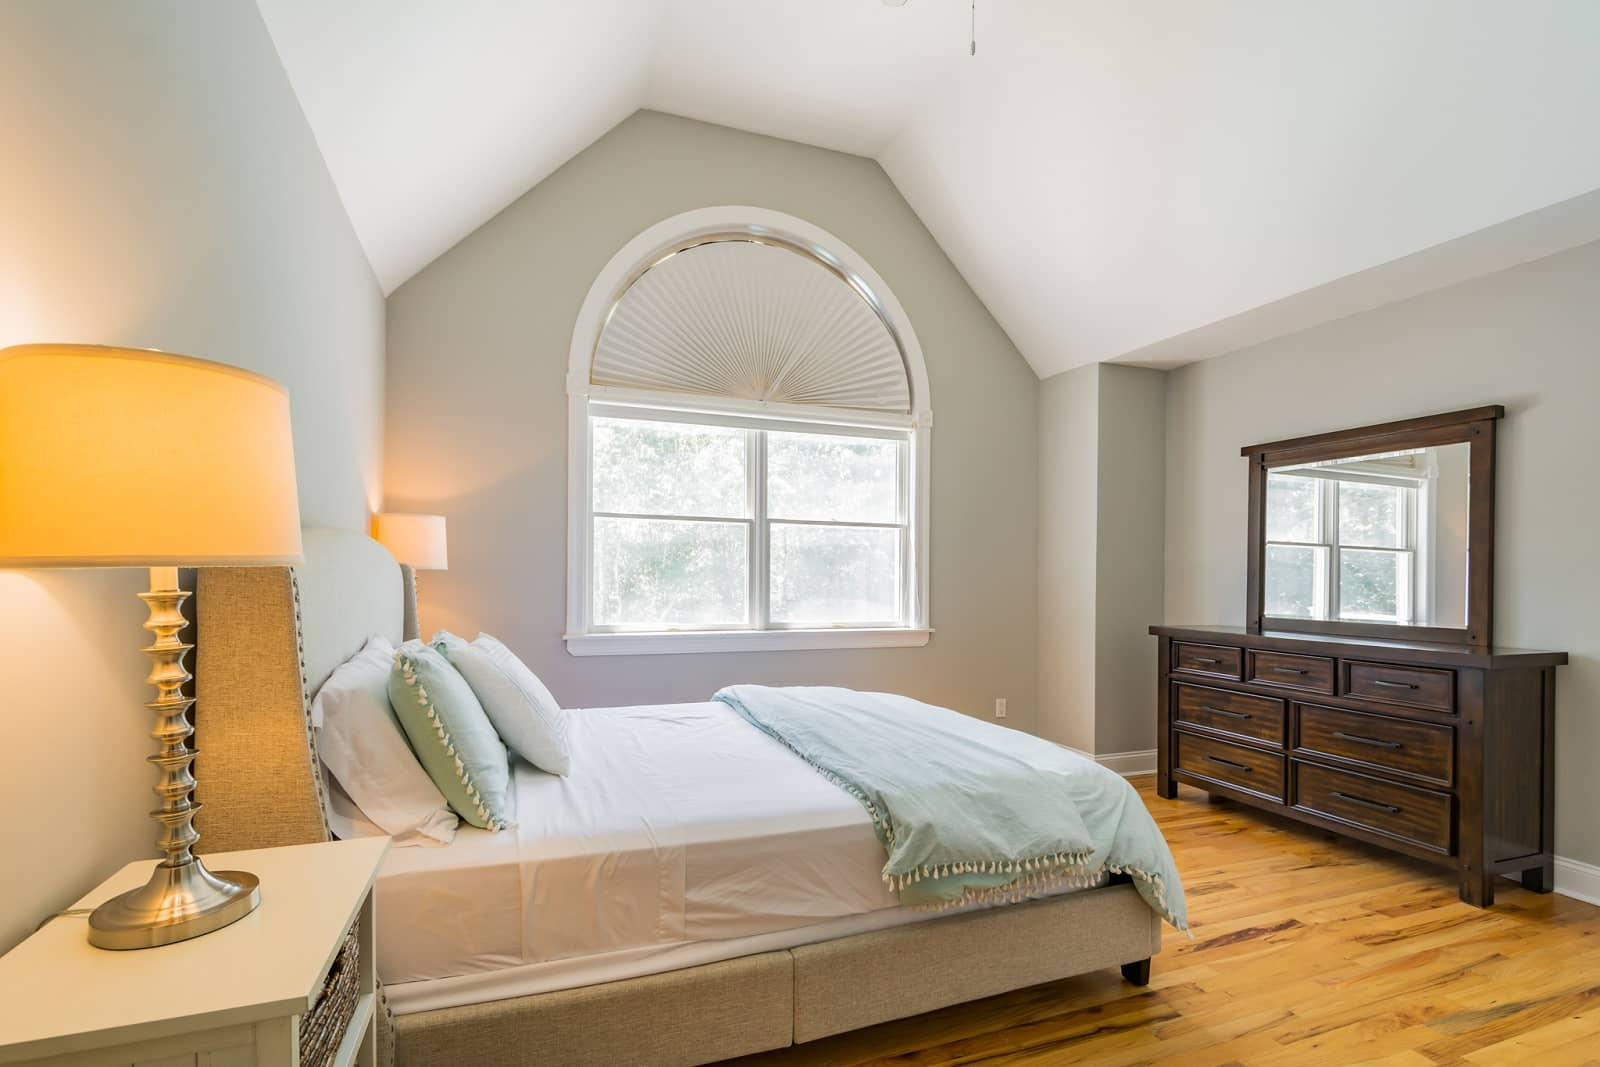 Real Estate Photography in The Hamptons - NY - USA - Bedroom View